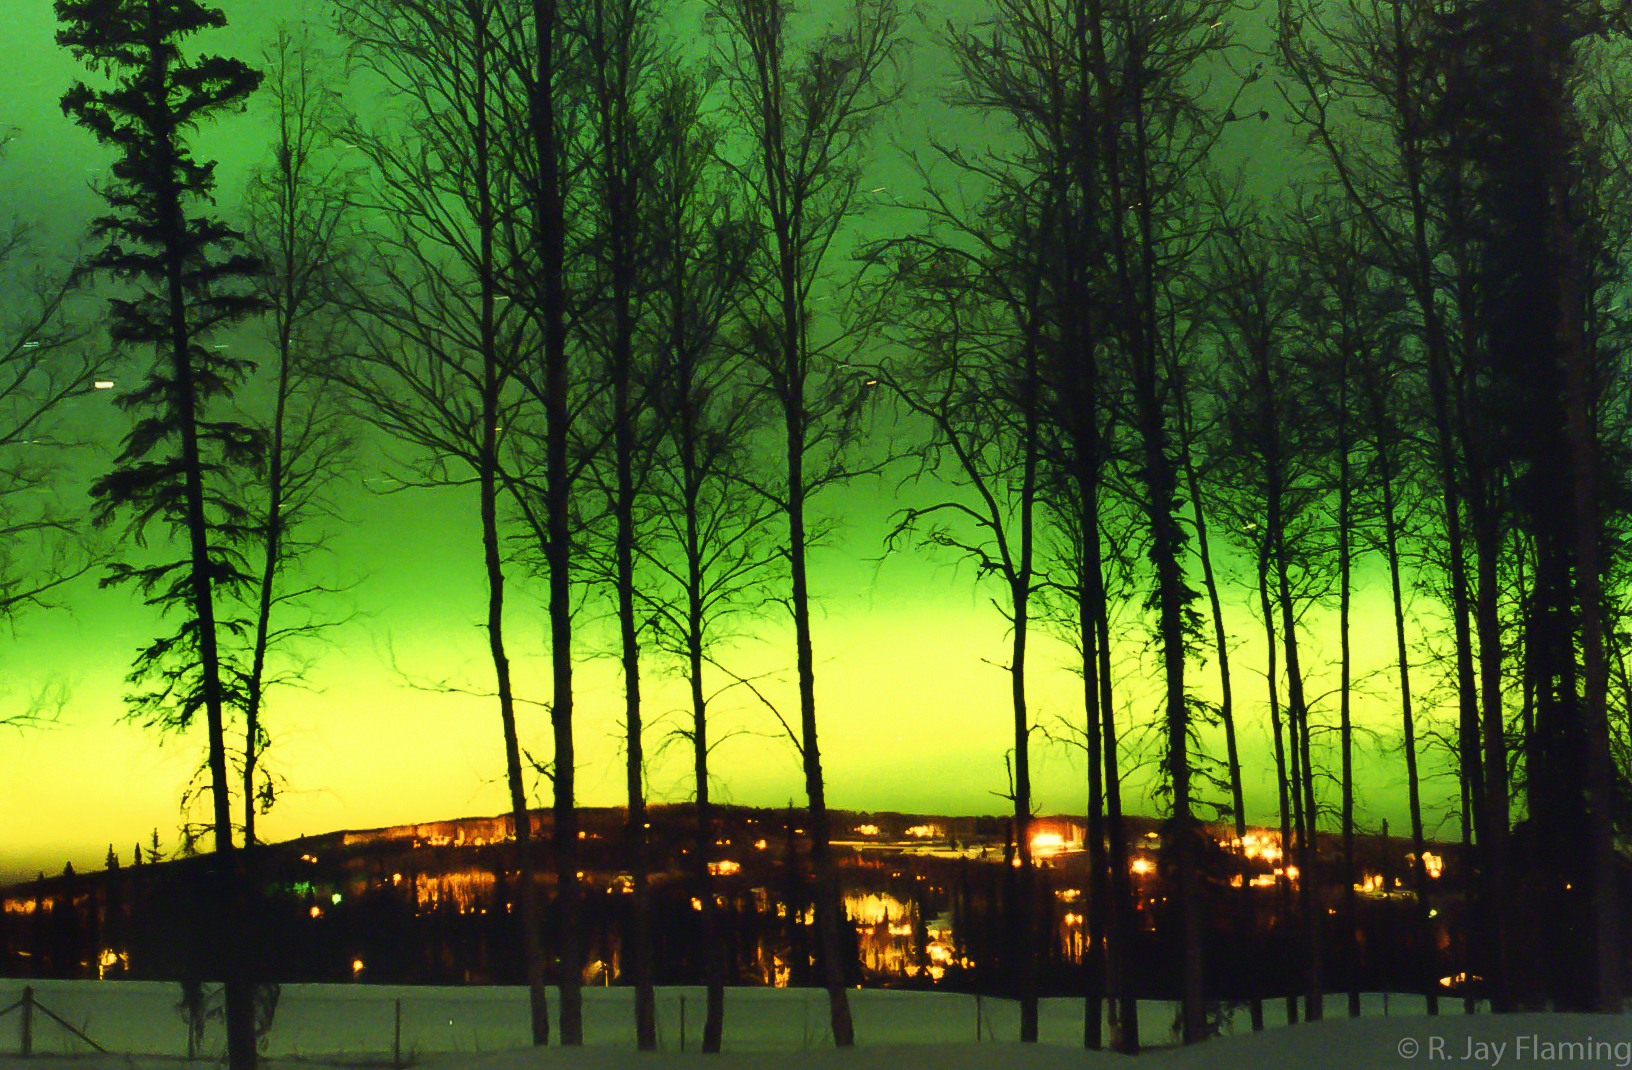 The Northern Lights in Fairbanks above a snow covered golf course in winter. Trees are silouetted in the foreground and lights from houses are seen on a hillside in the background.